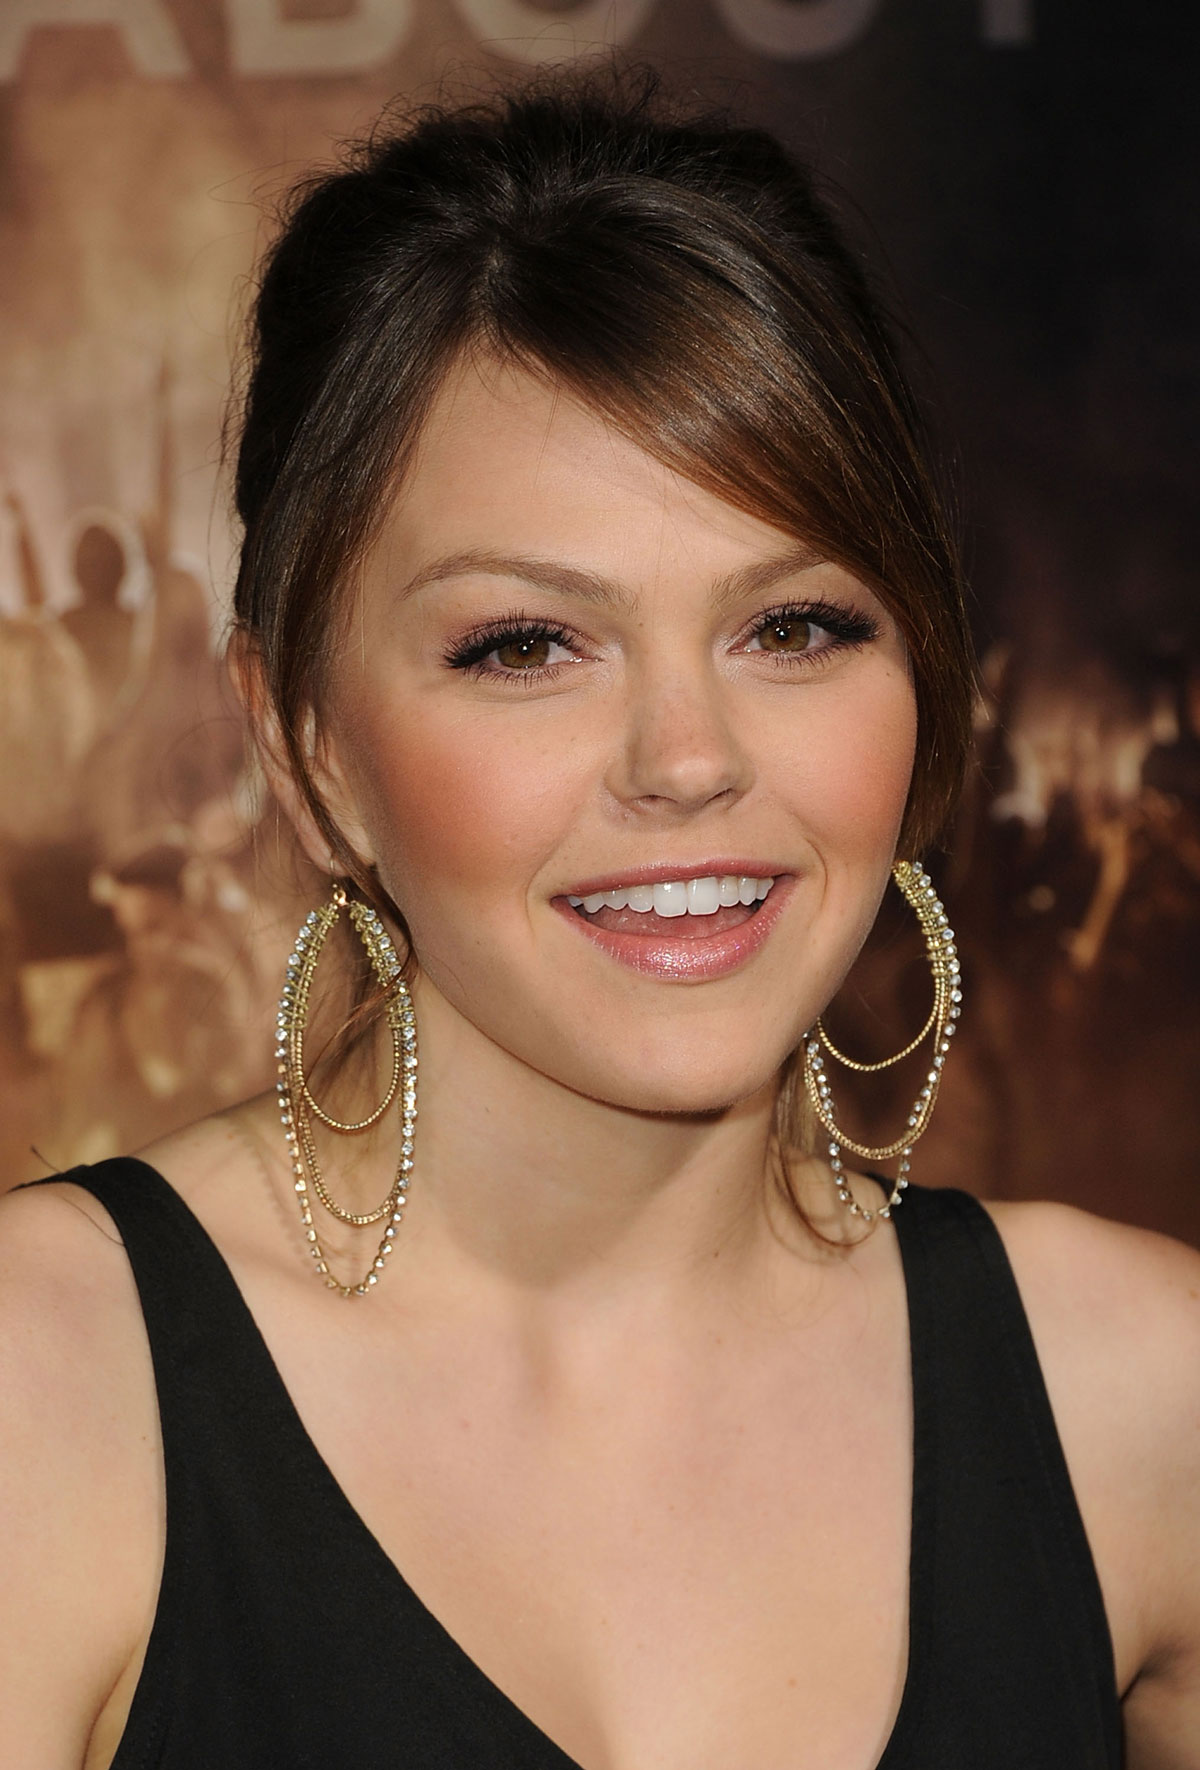 desktop dazzling aimee teegarden wallpaper free hd wallpapers free download